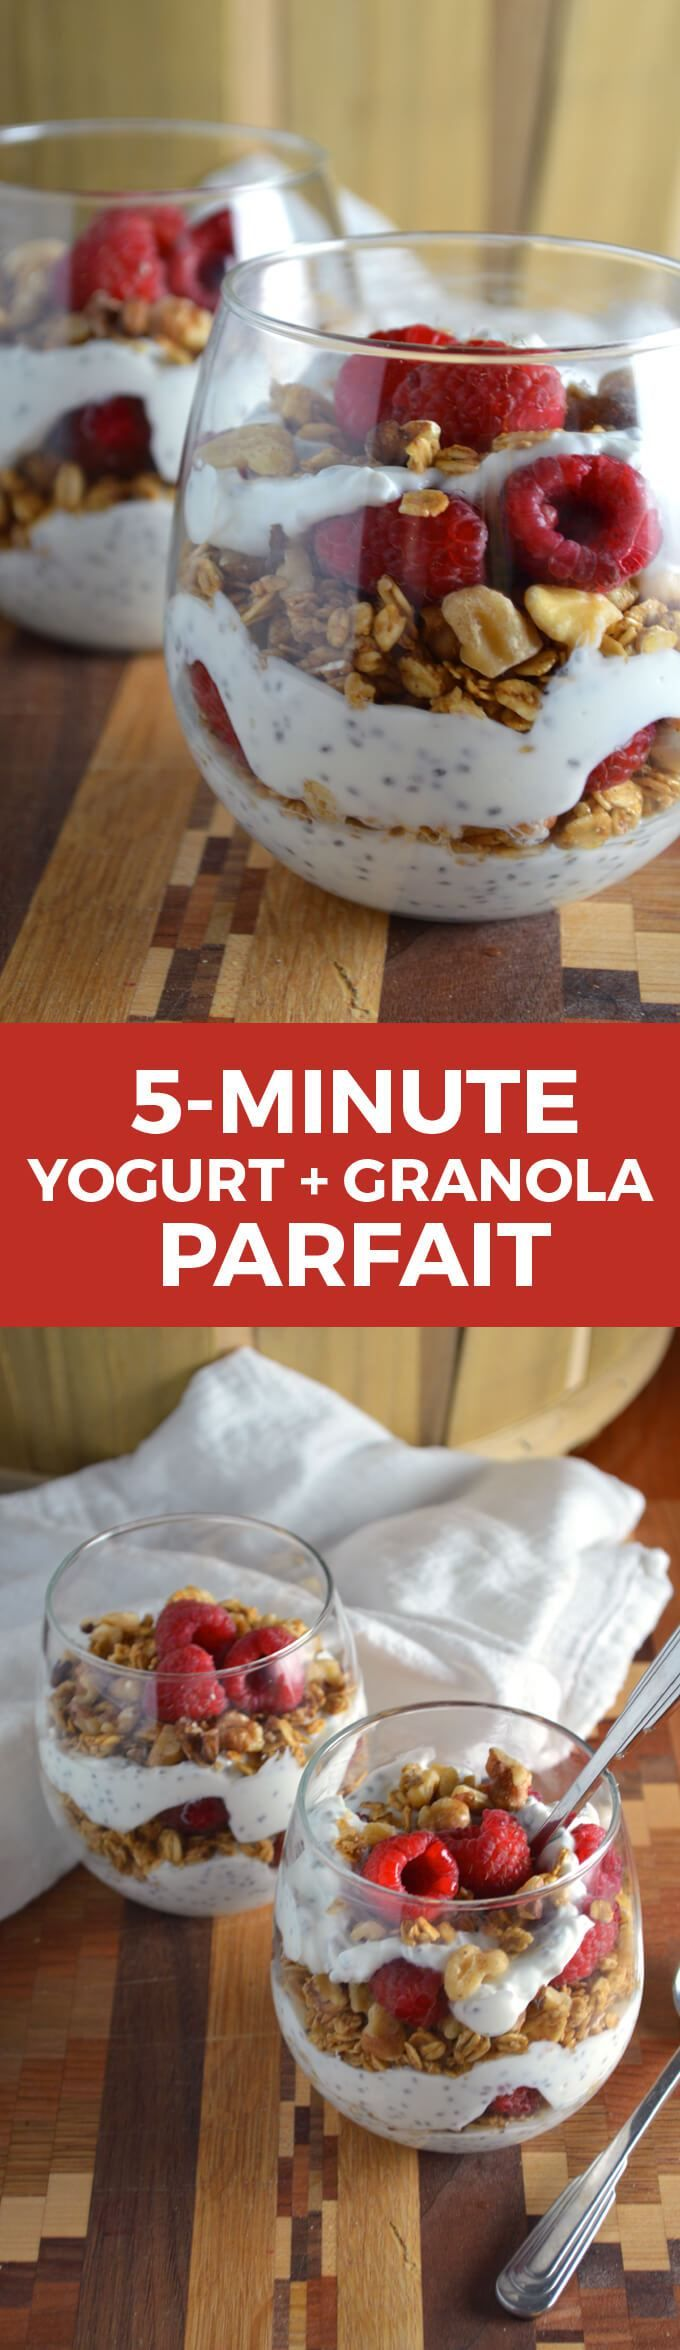 5-Minute Yogurt + Granola Parfaits -- take your cold breakfasts to the next level!